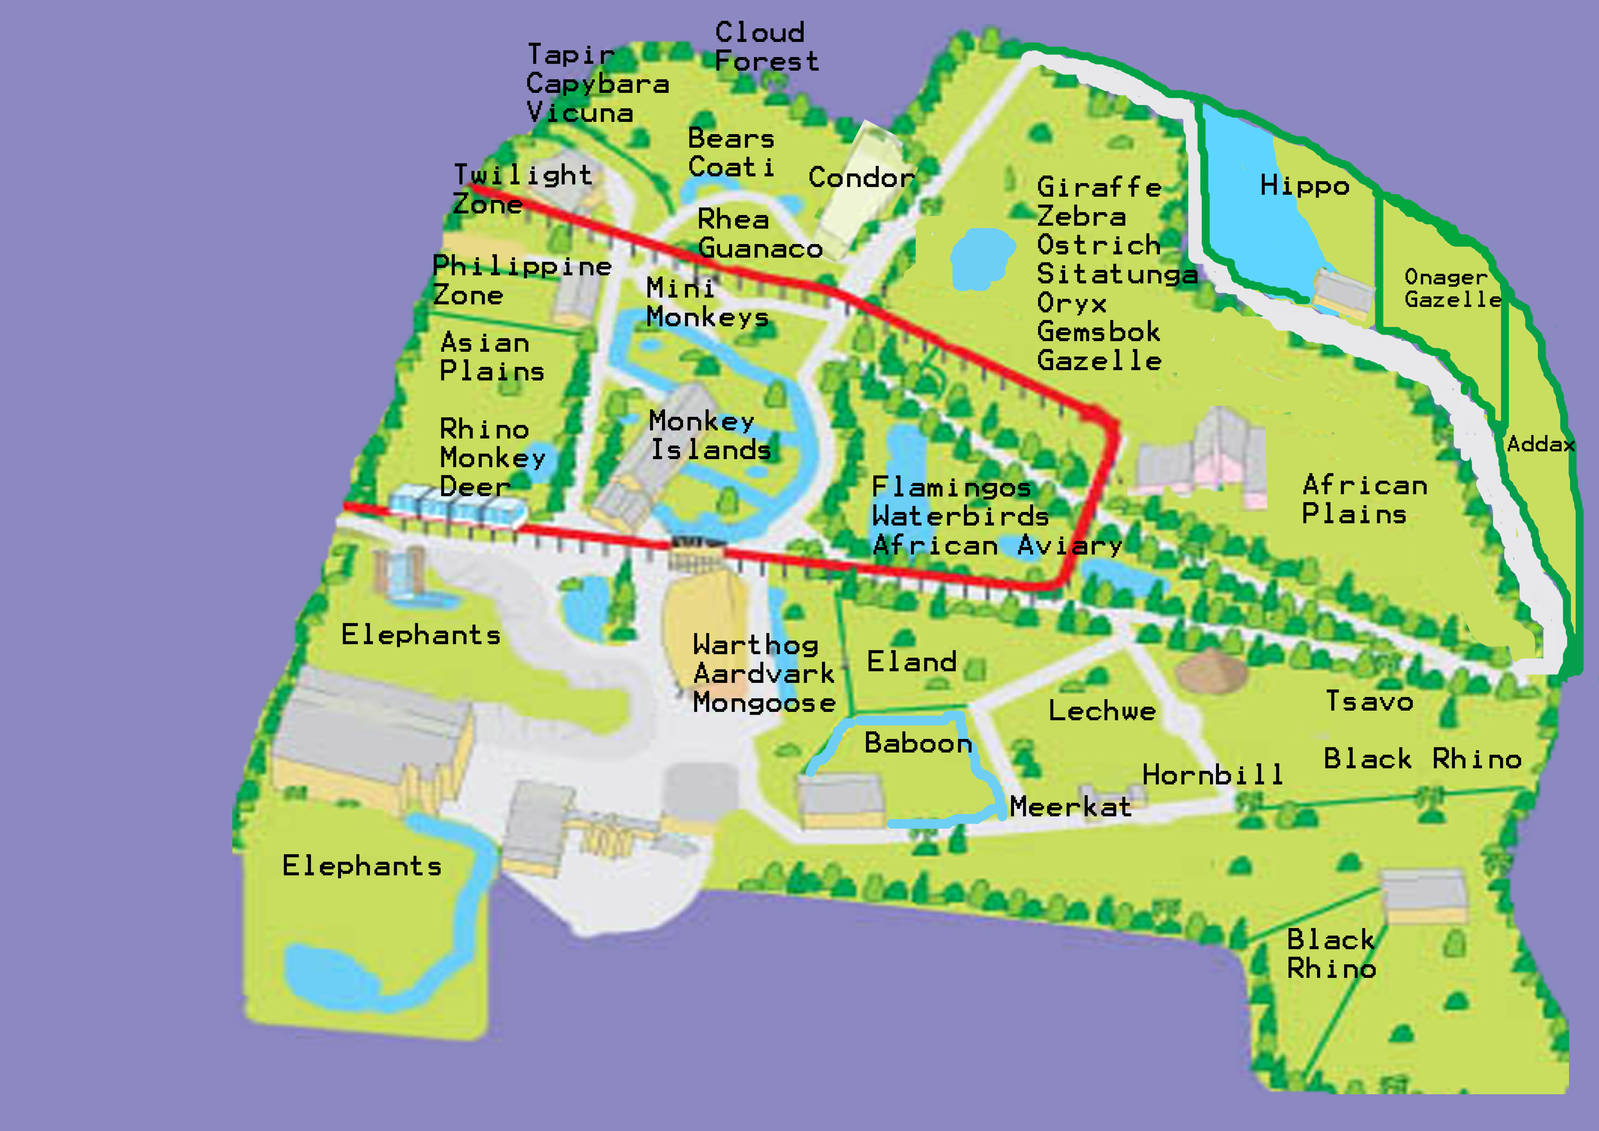 My Chester Zoo Plan